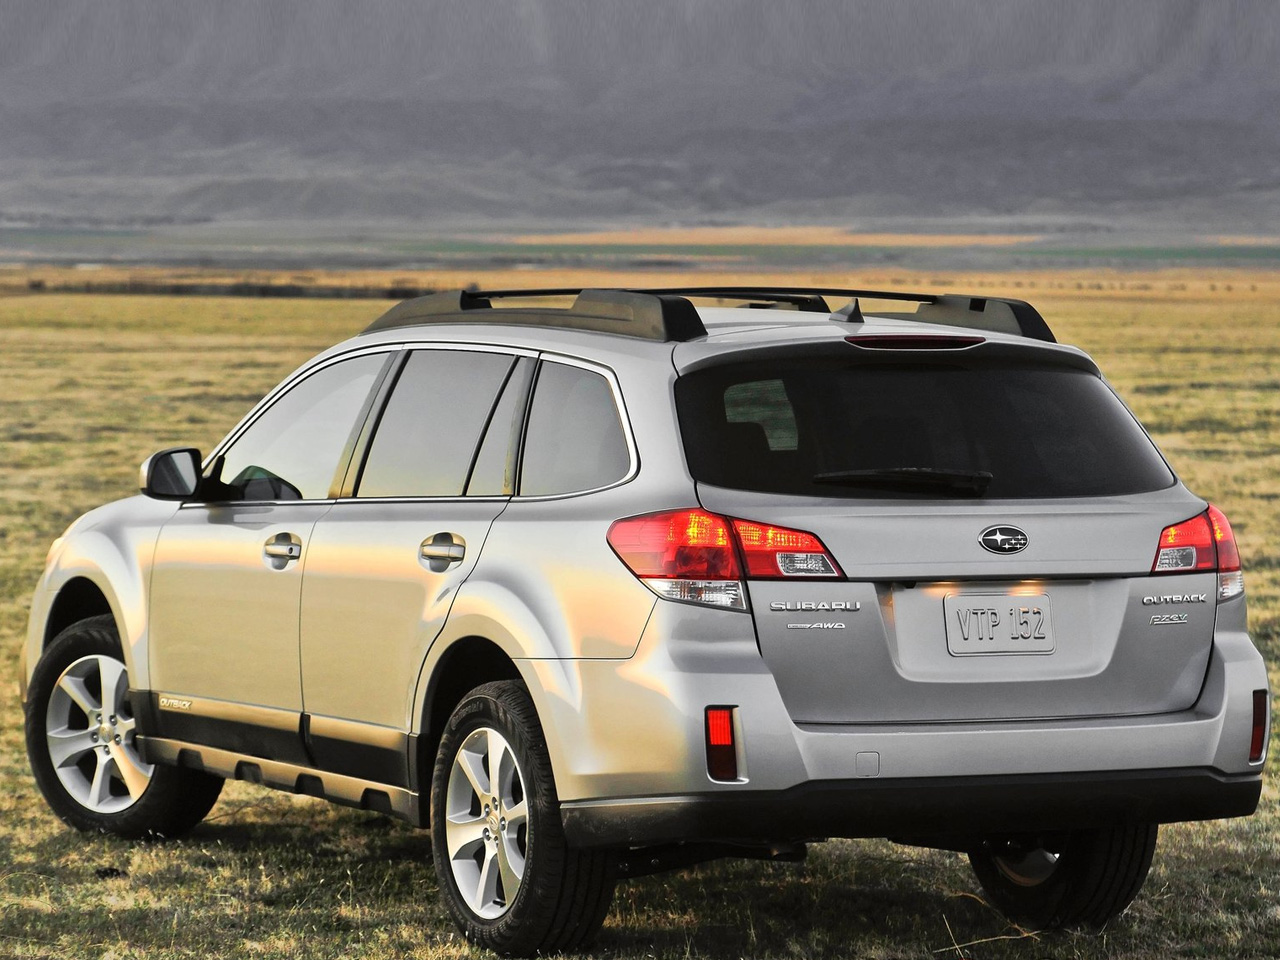 2013 Subaru Outback Review and Pictures